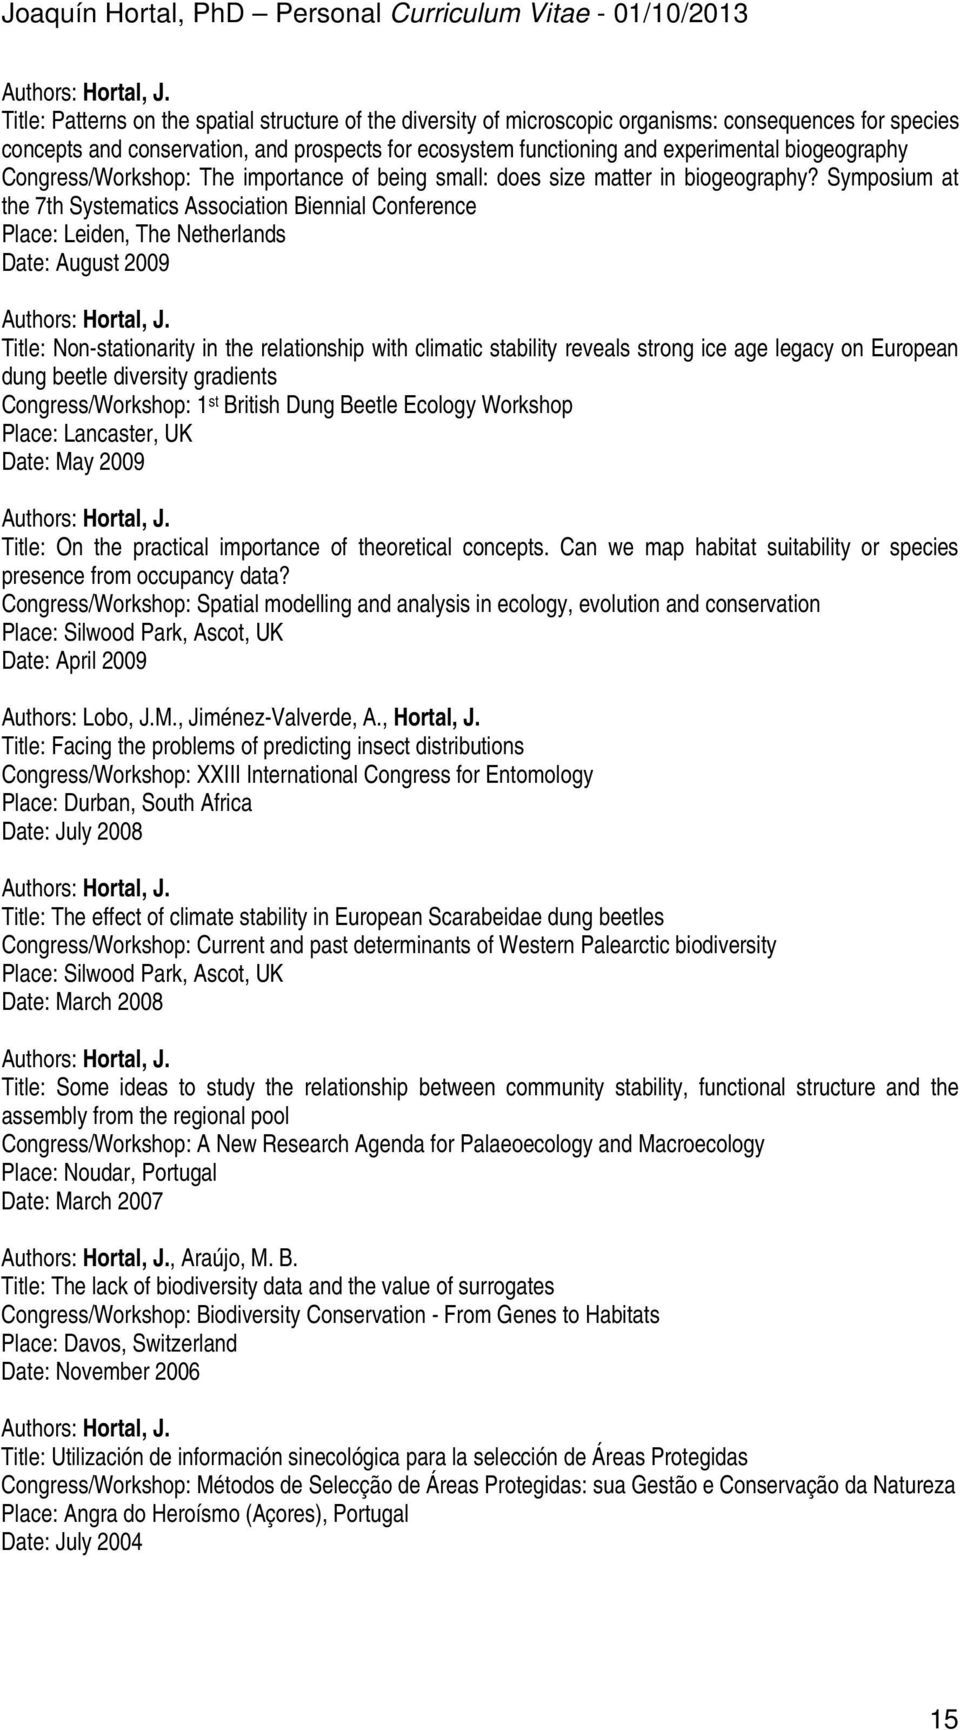 Symposium at the 7th Systematics Association Biennial Conference Place: Leiden, The Netherlands Date: August 2009 Title: Non-stationarity in the relationship with climatic stability reveals strong